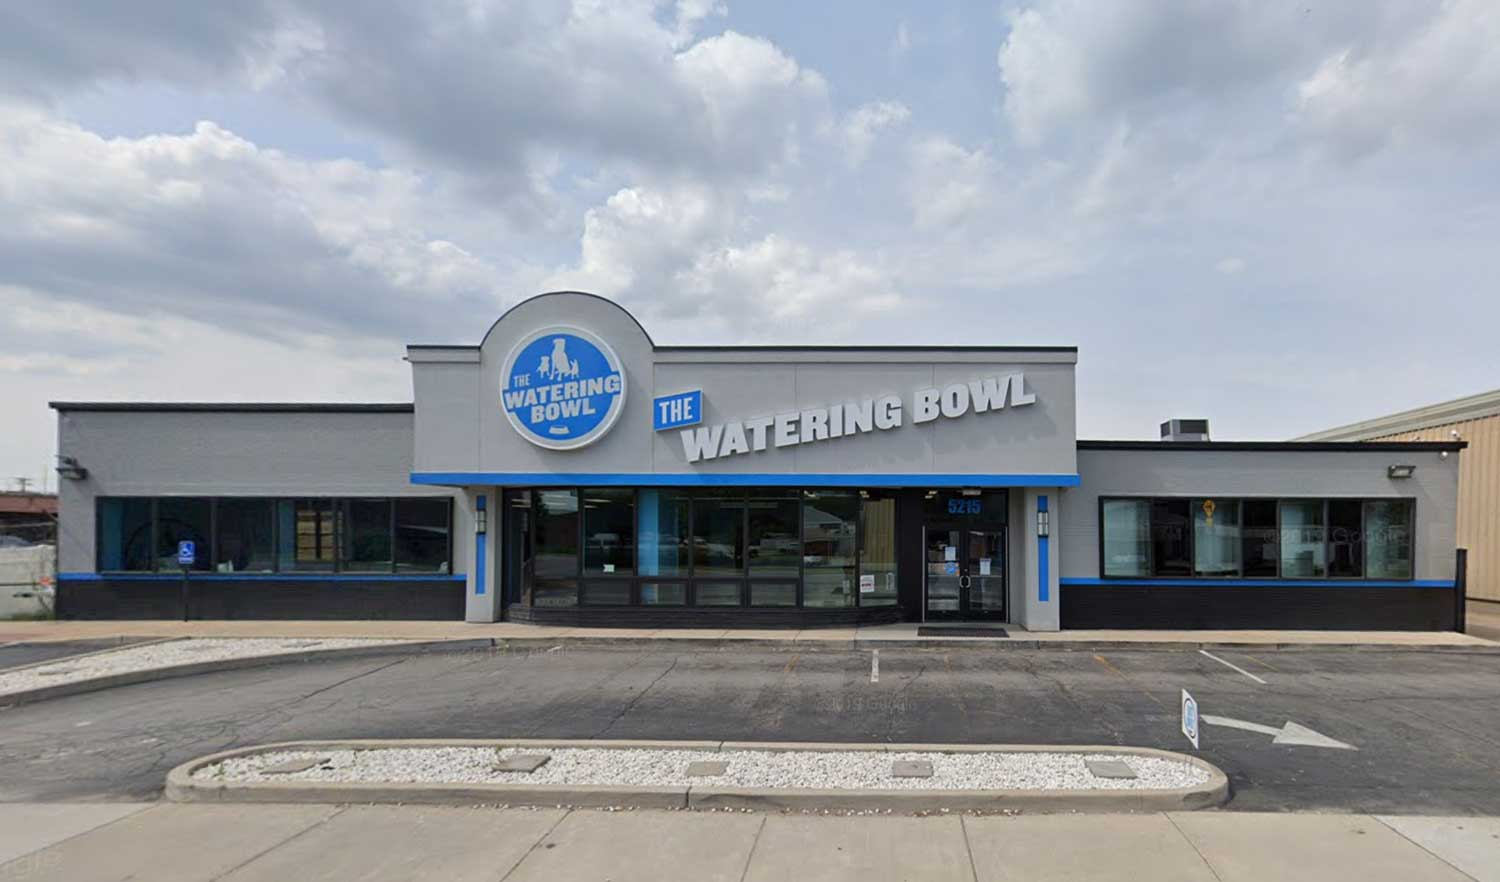 The Watering Bowl location on Manchester Ave St. Louis